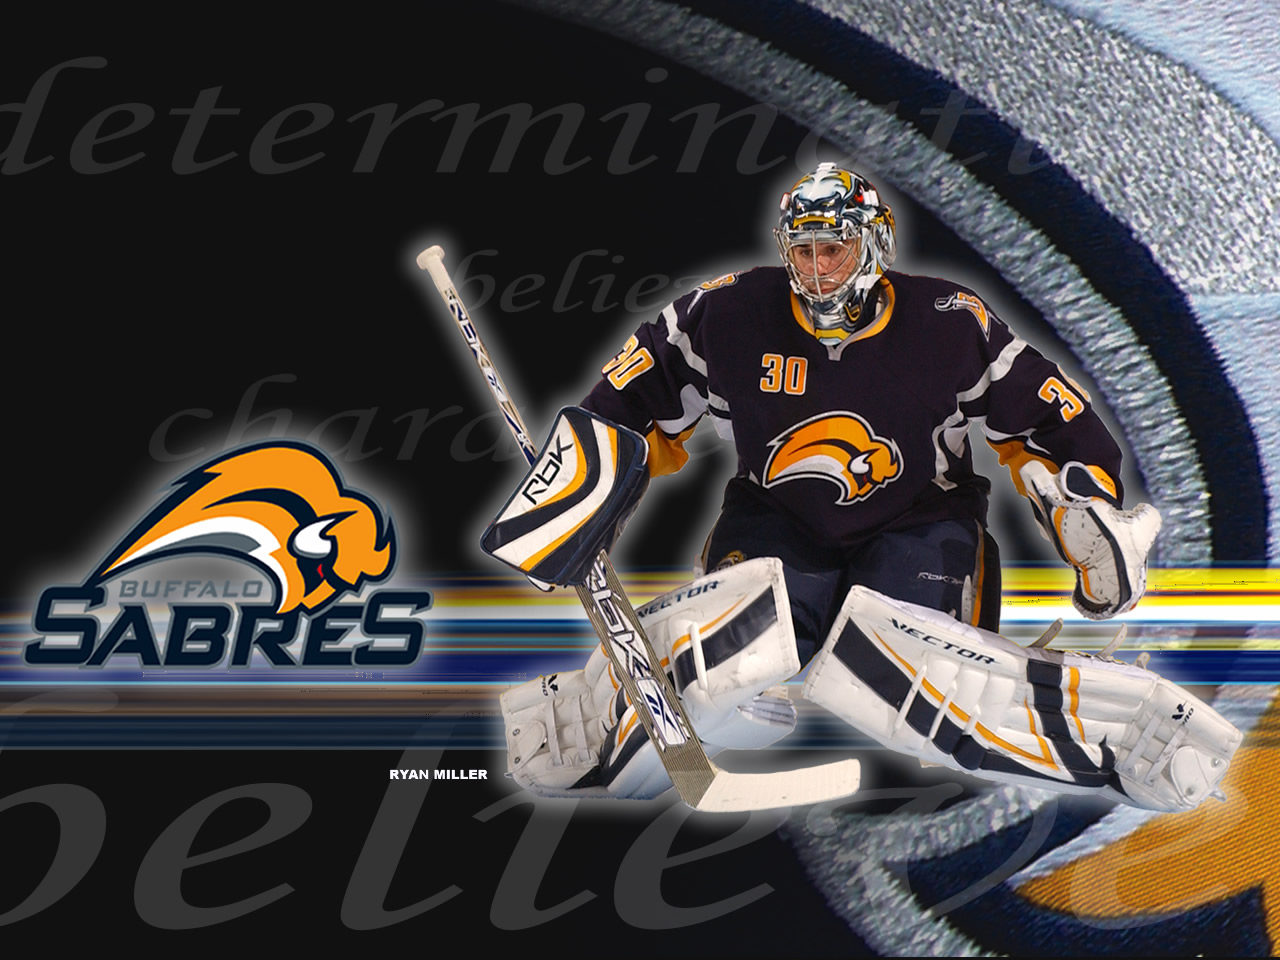 1280x960 - Buffalo Sabres Wallpapers 32